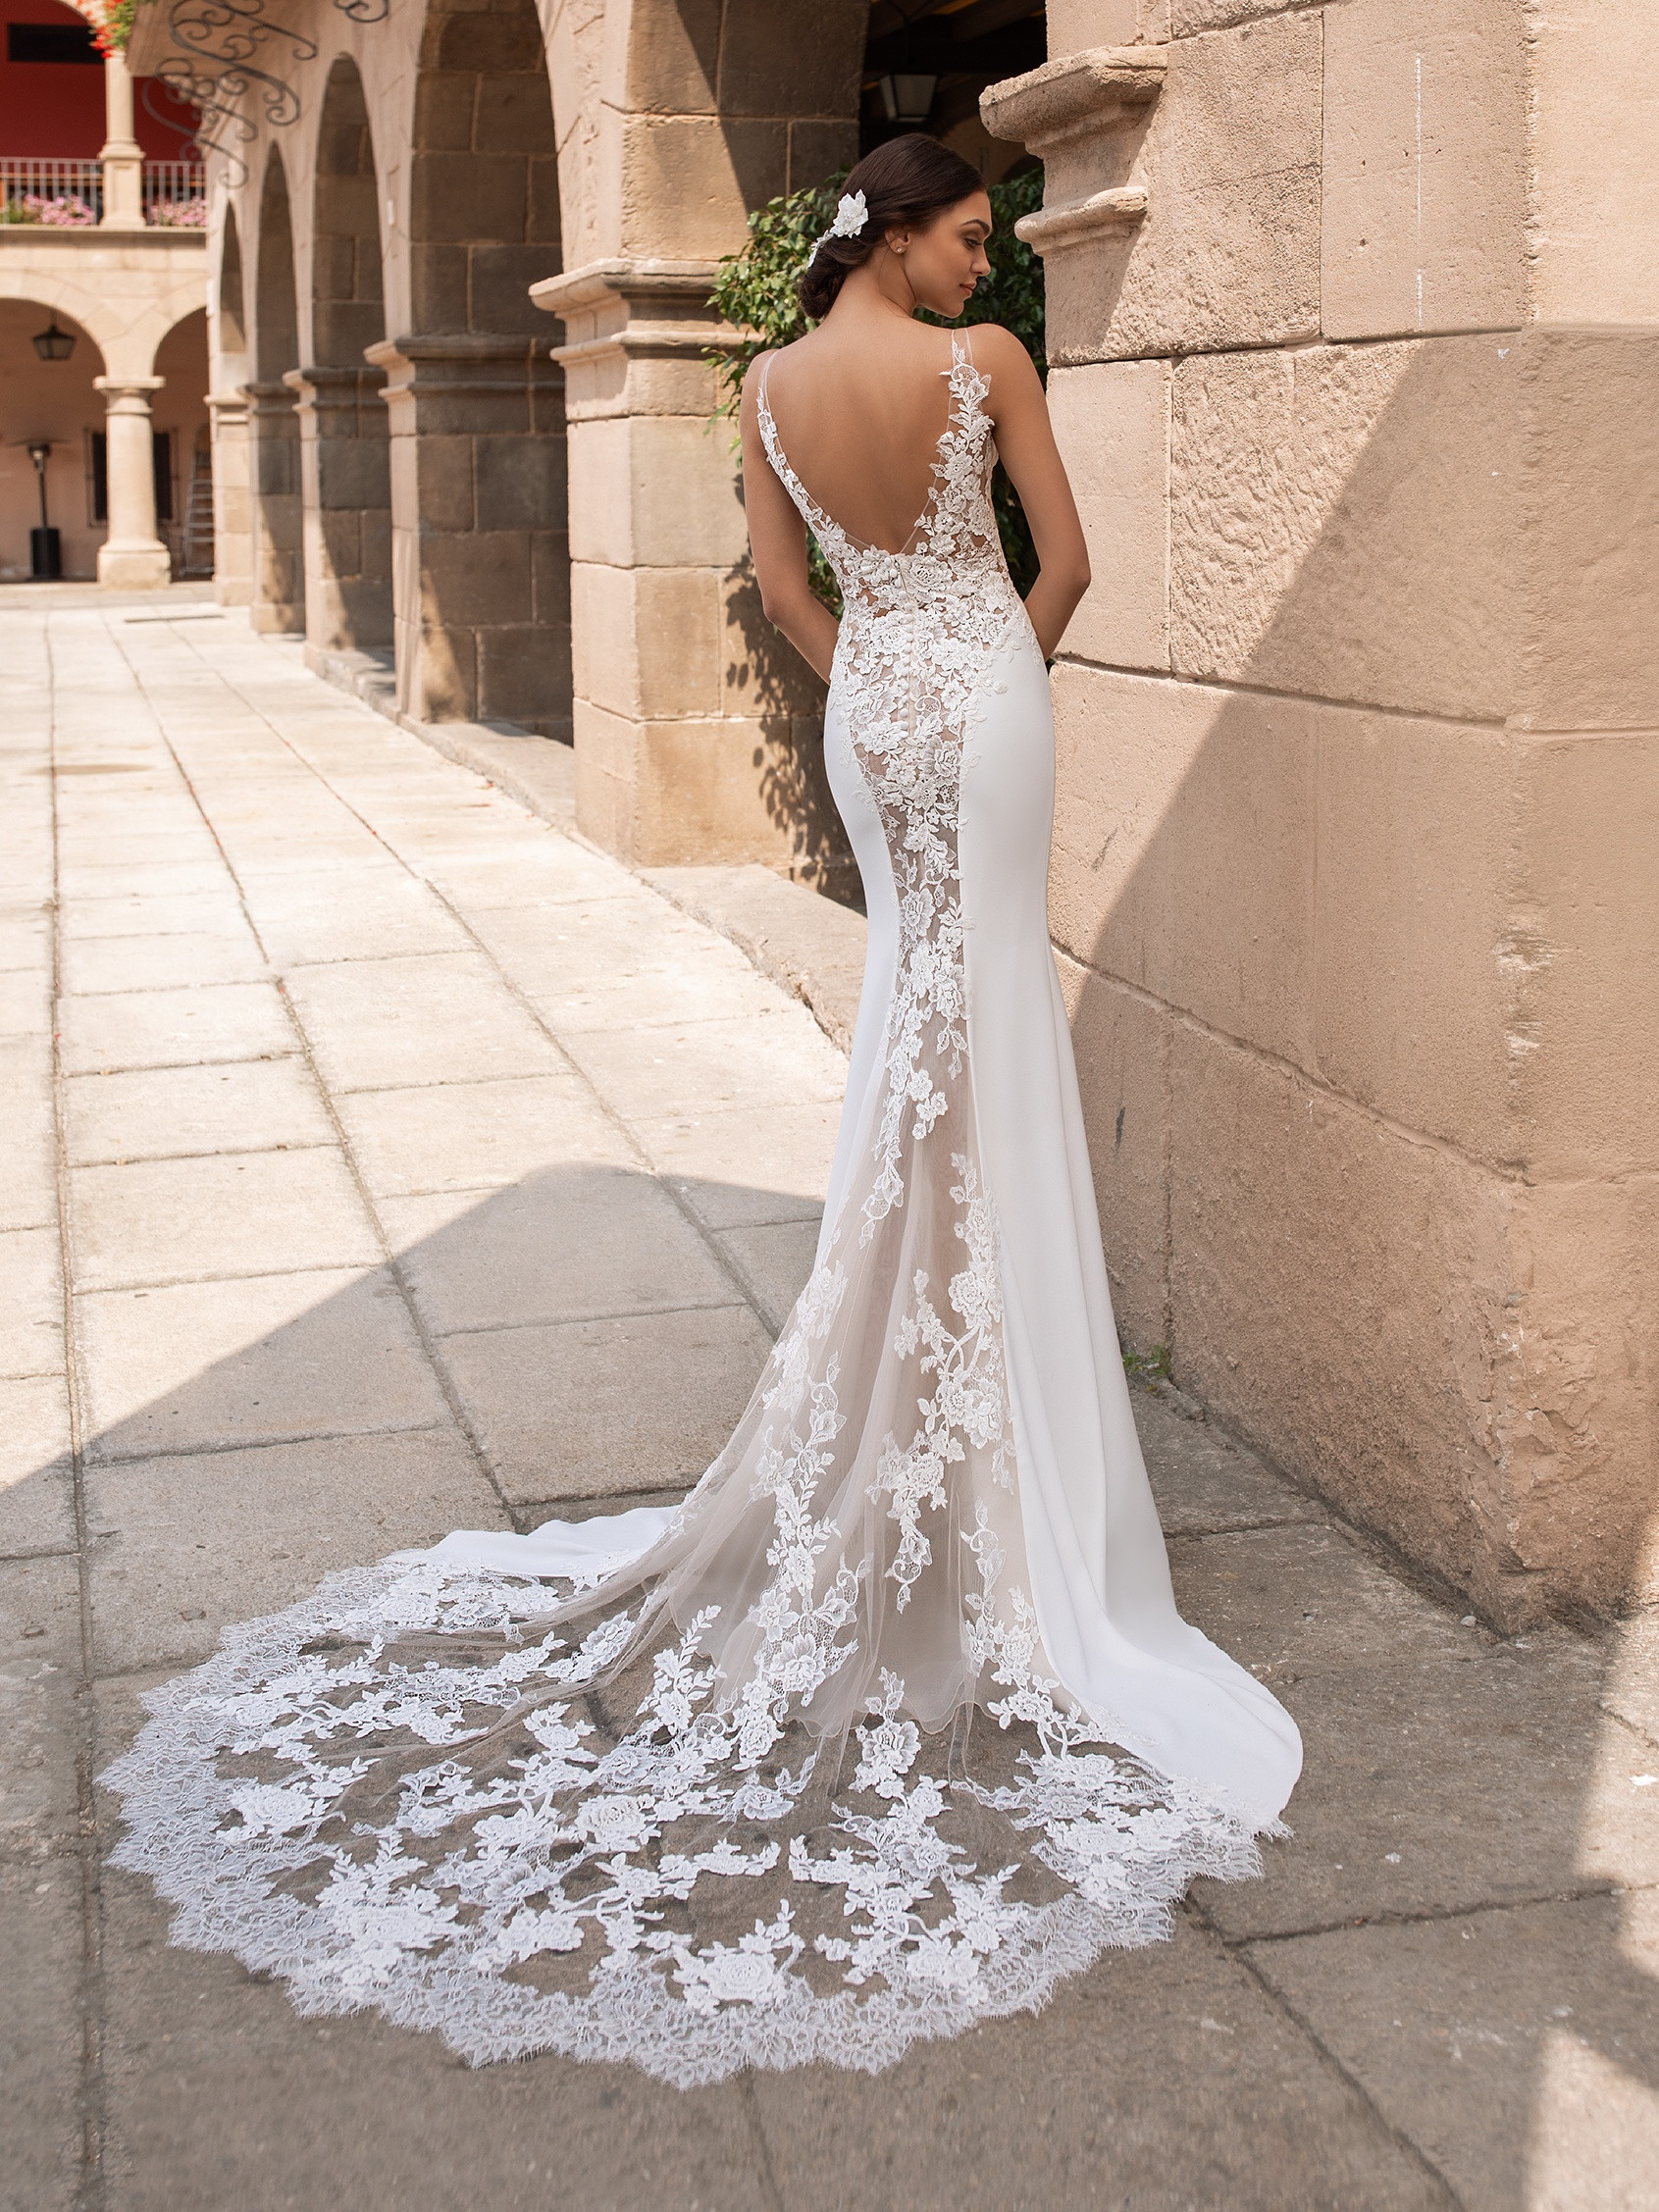 Bride using this sleek mermaid gown features a pure white, crepe façade and tulle, illusion paneling on the back, with carefully placed roses travelling from the straps down to the train's edge.